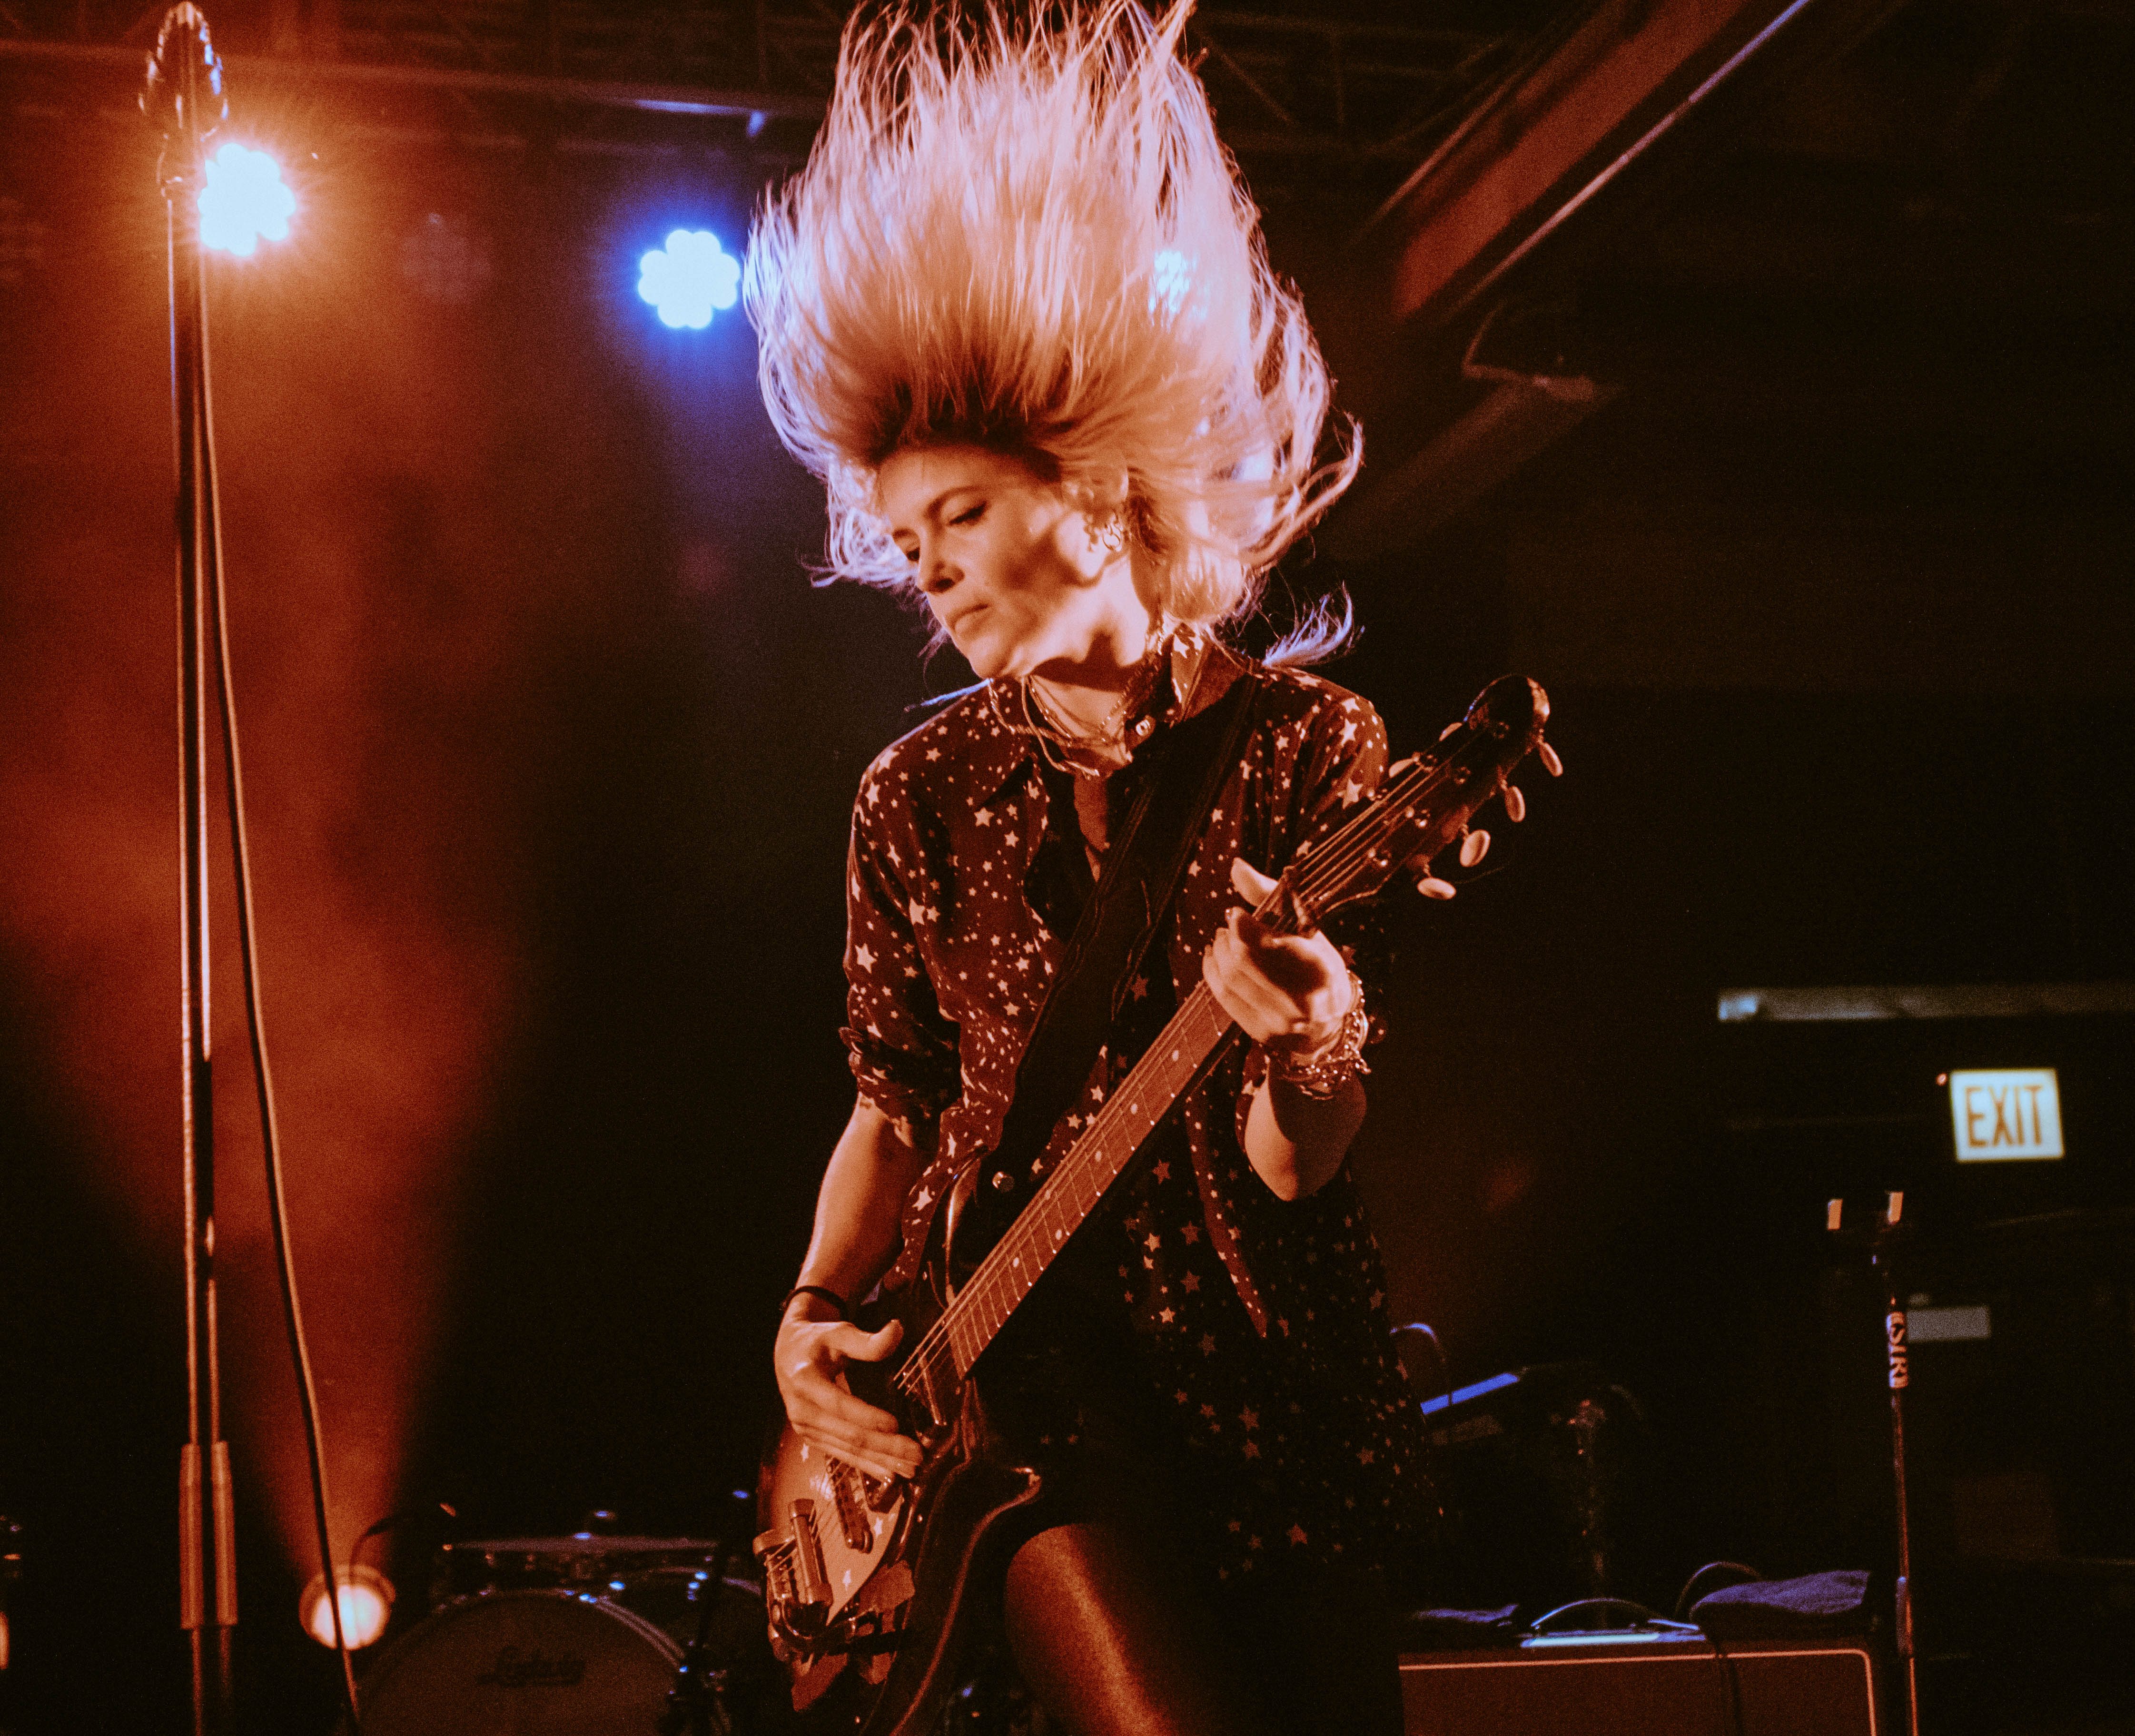 The Kills celebrate female skaters with performance at House of Vans